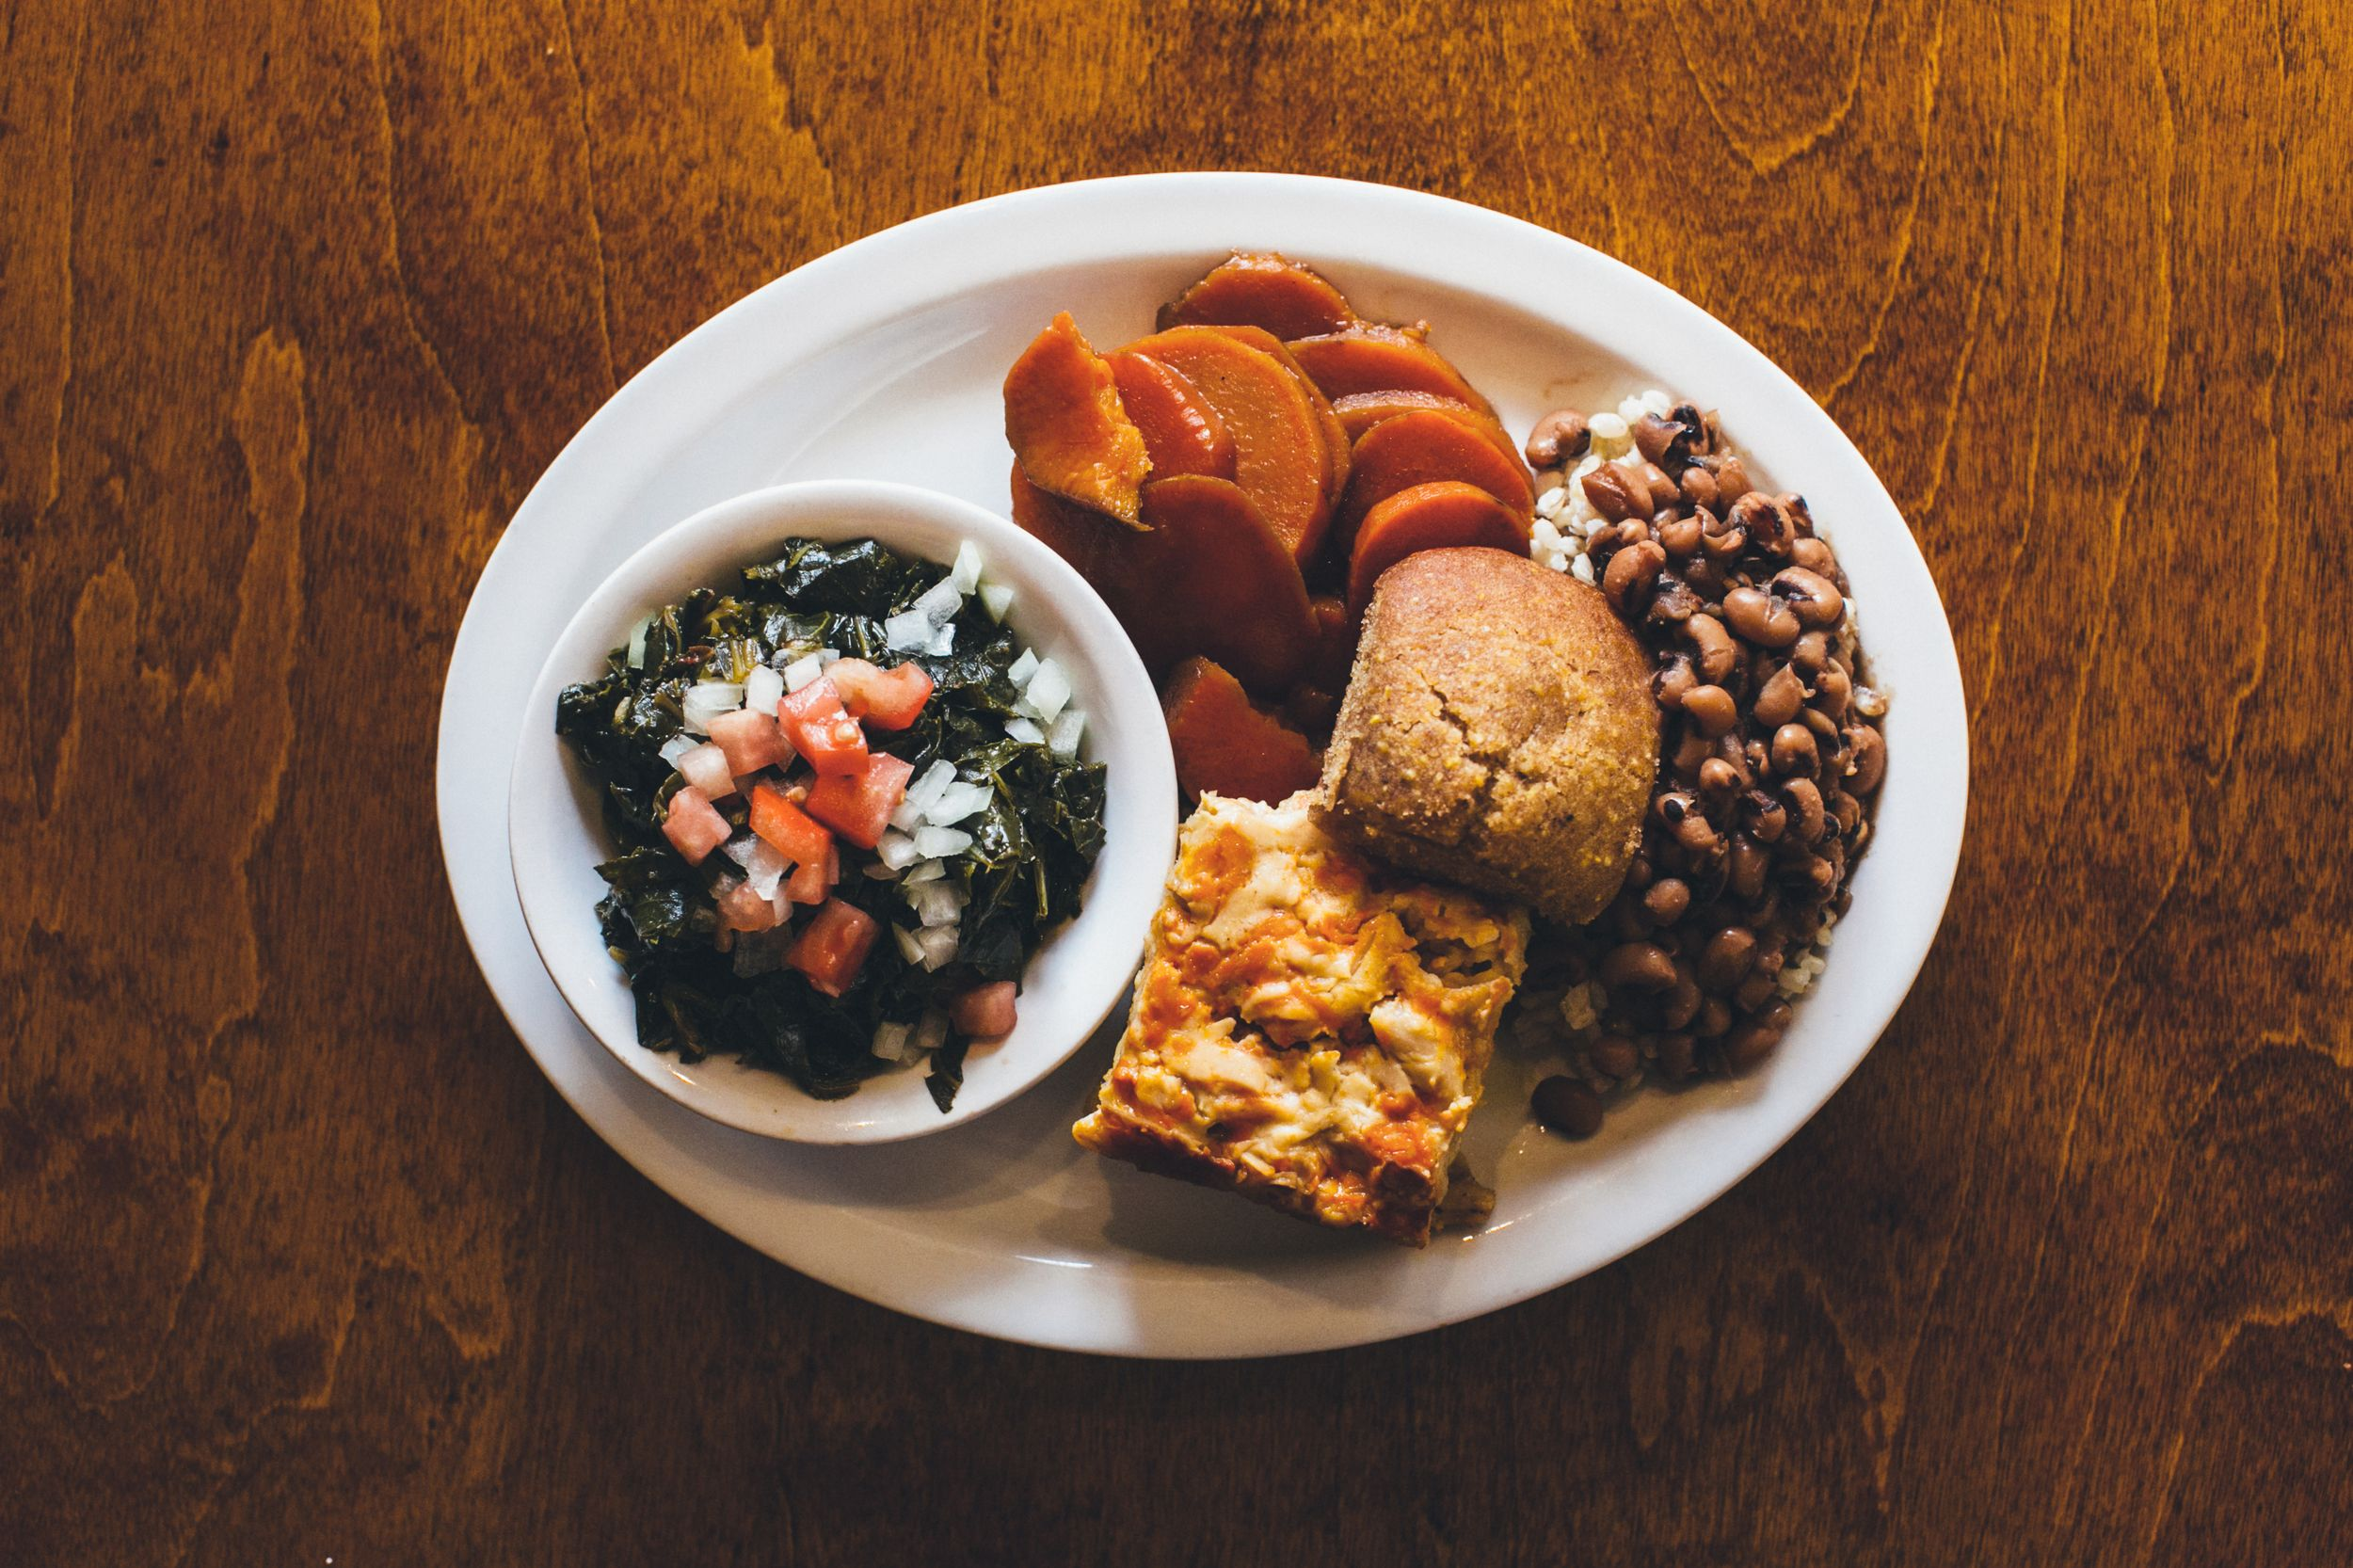 Detroit S First Vegan Soul Food Restaurant Fresh Mostly Organic And Completely Plant Based